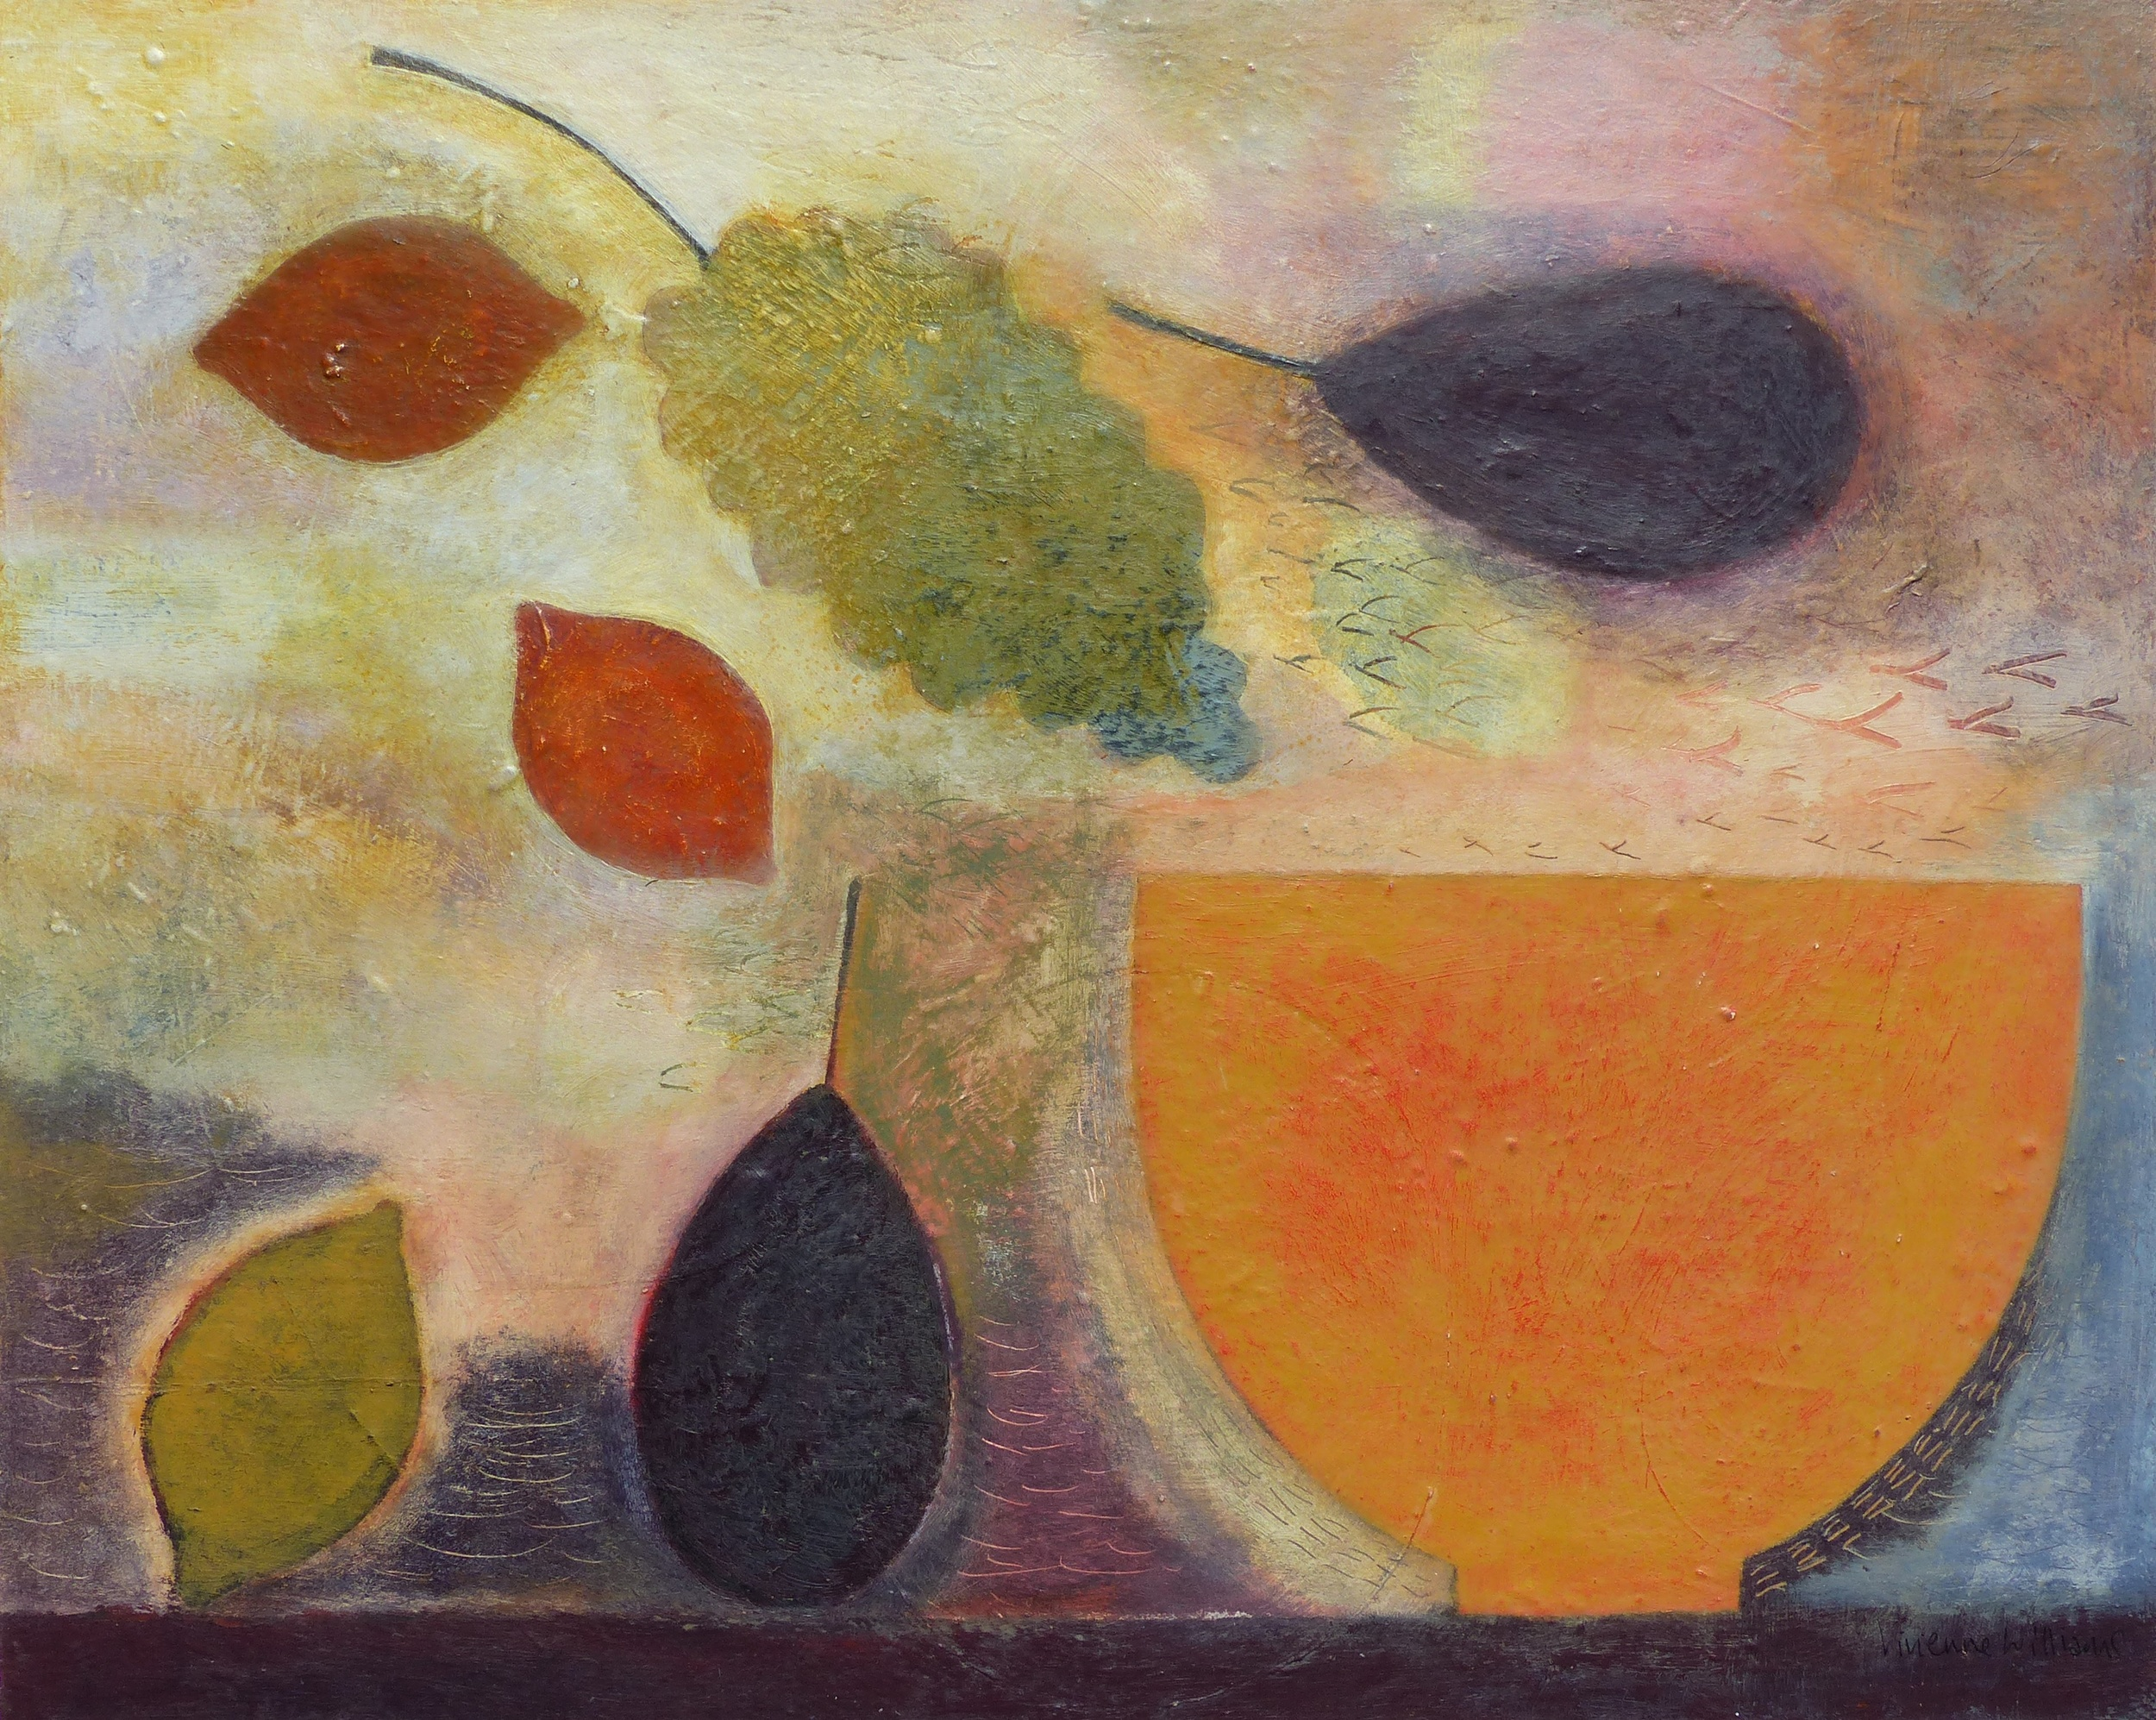 Still Life with Fruit and Bowl, 41cm x 51cm, 2015